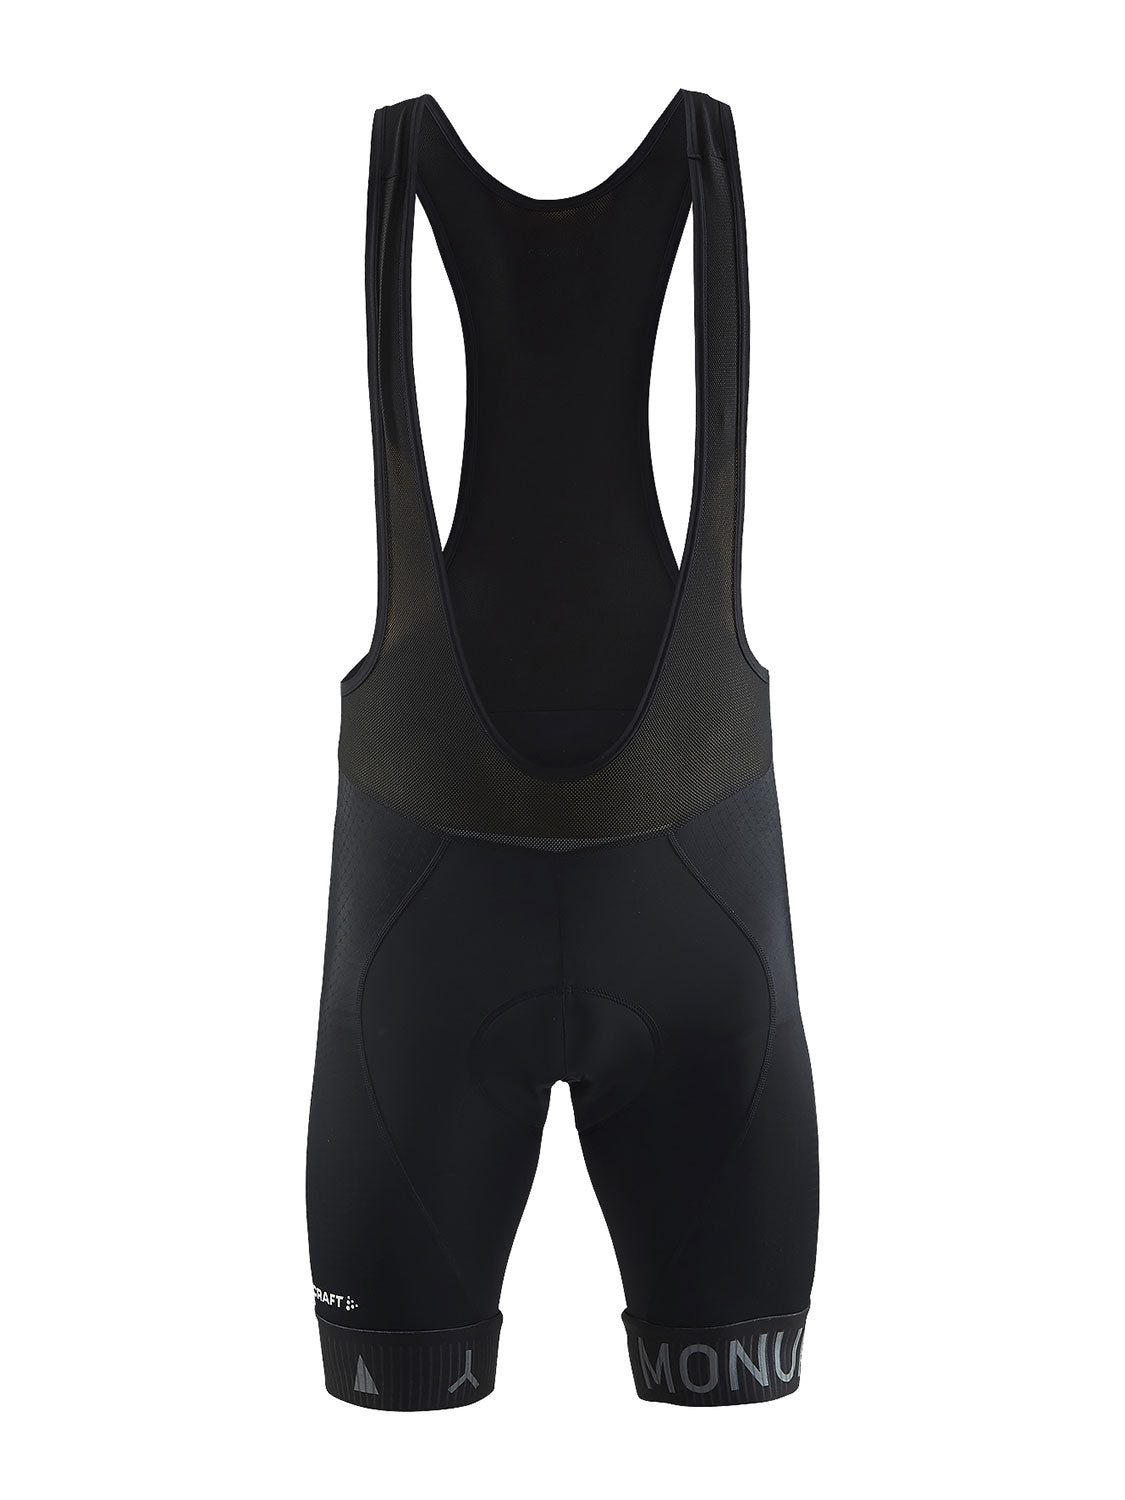 Monument Bib Shorts